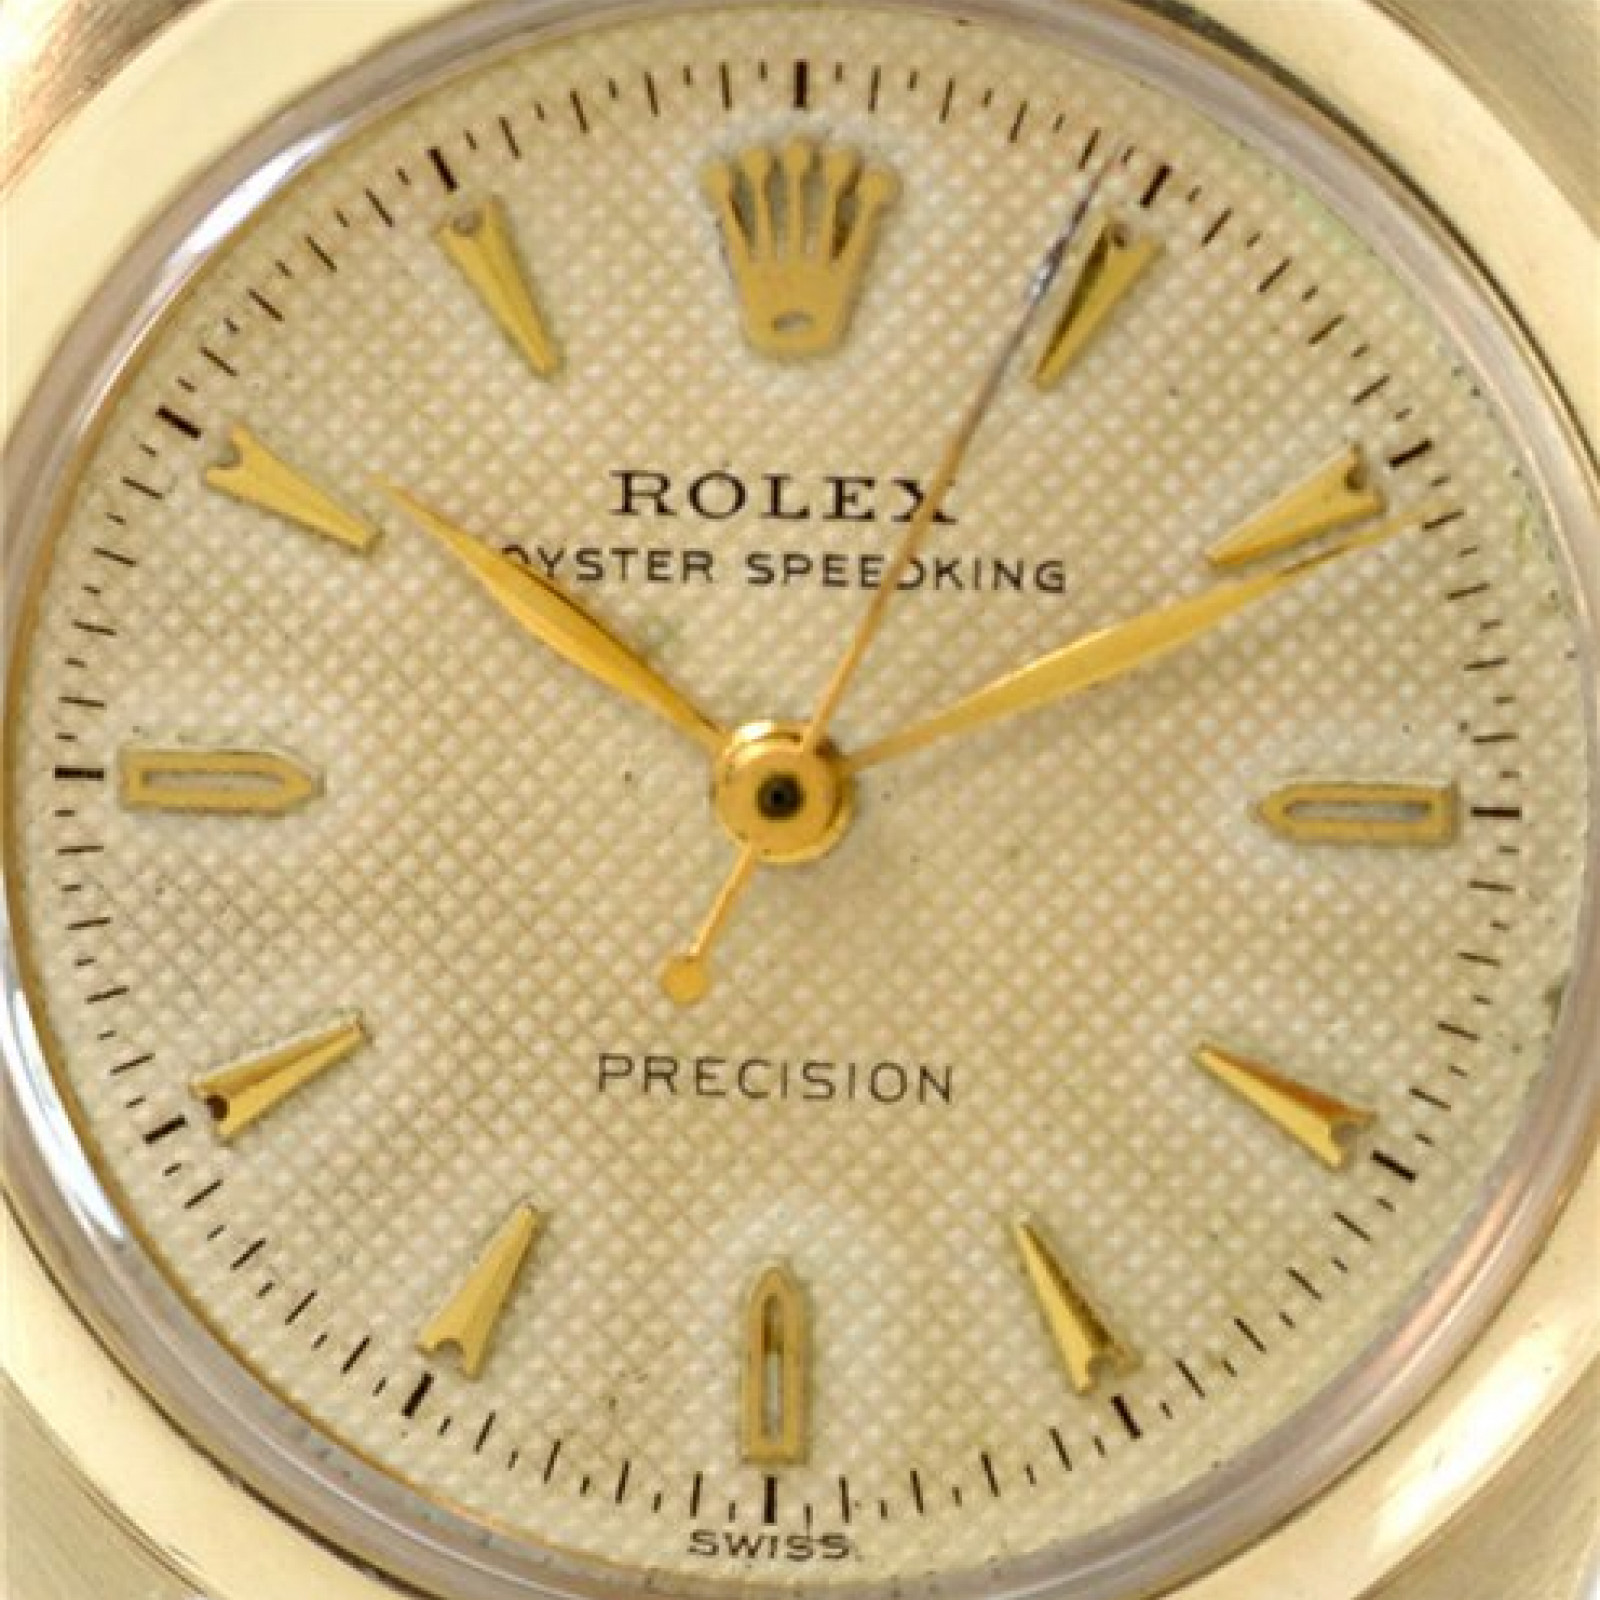 Vintage Rolex Oyster Speedking 6020 Gold with Champagne Dial